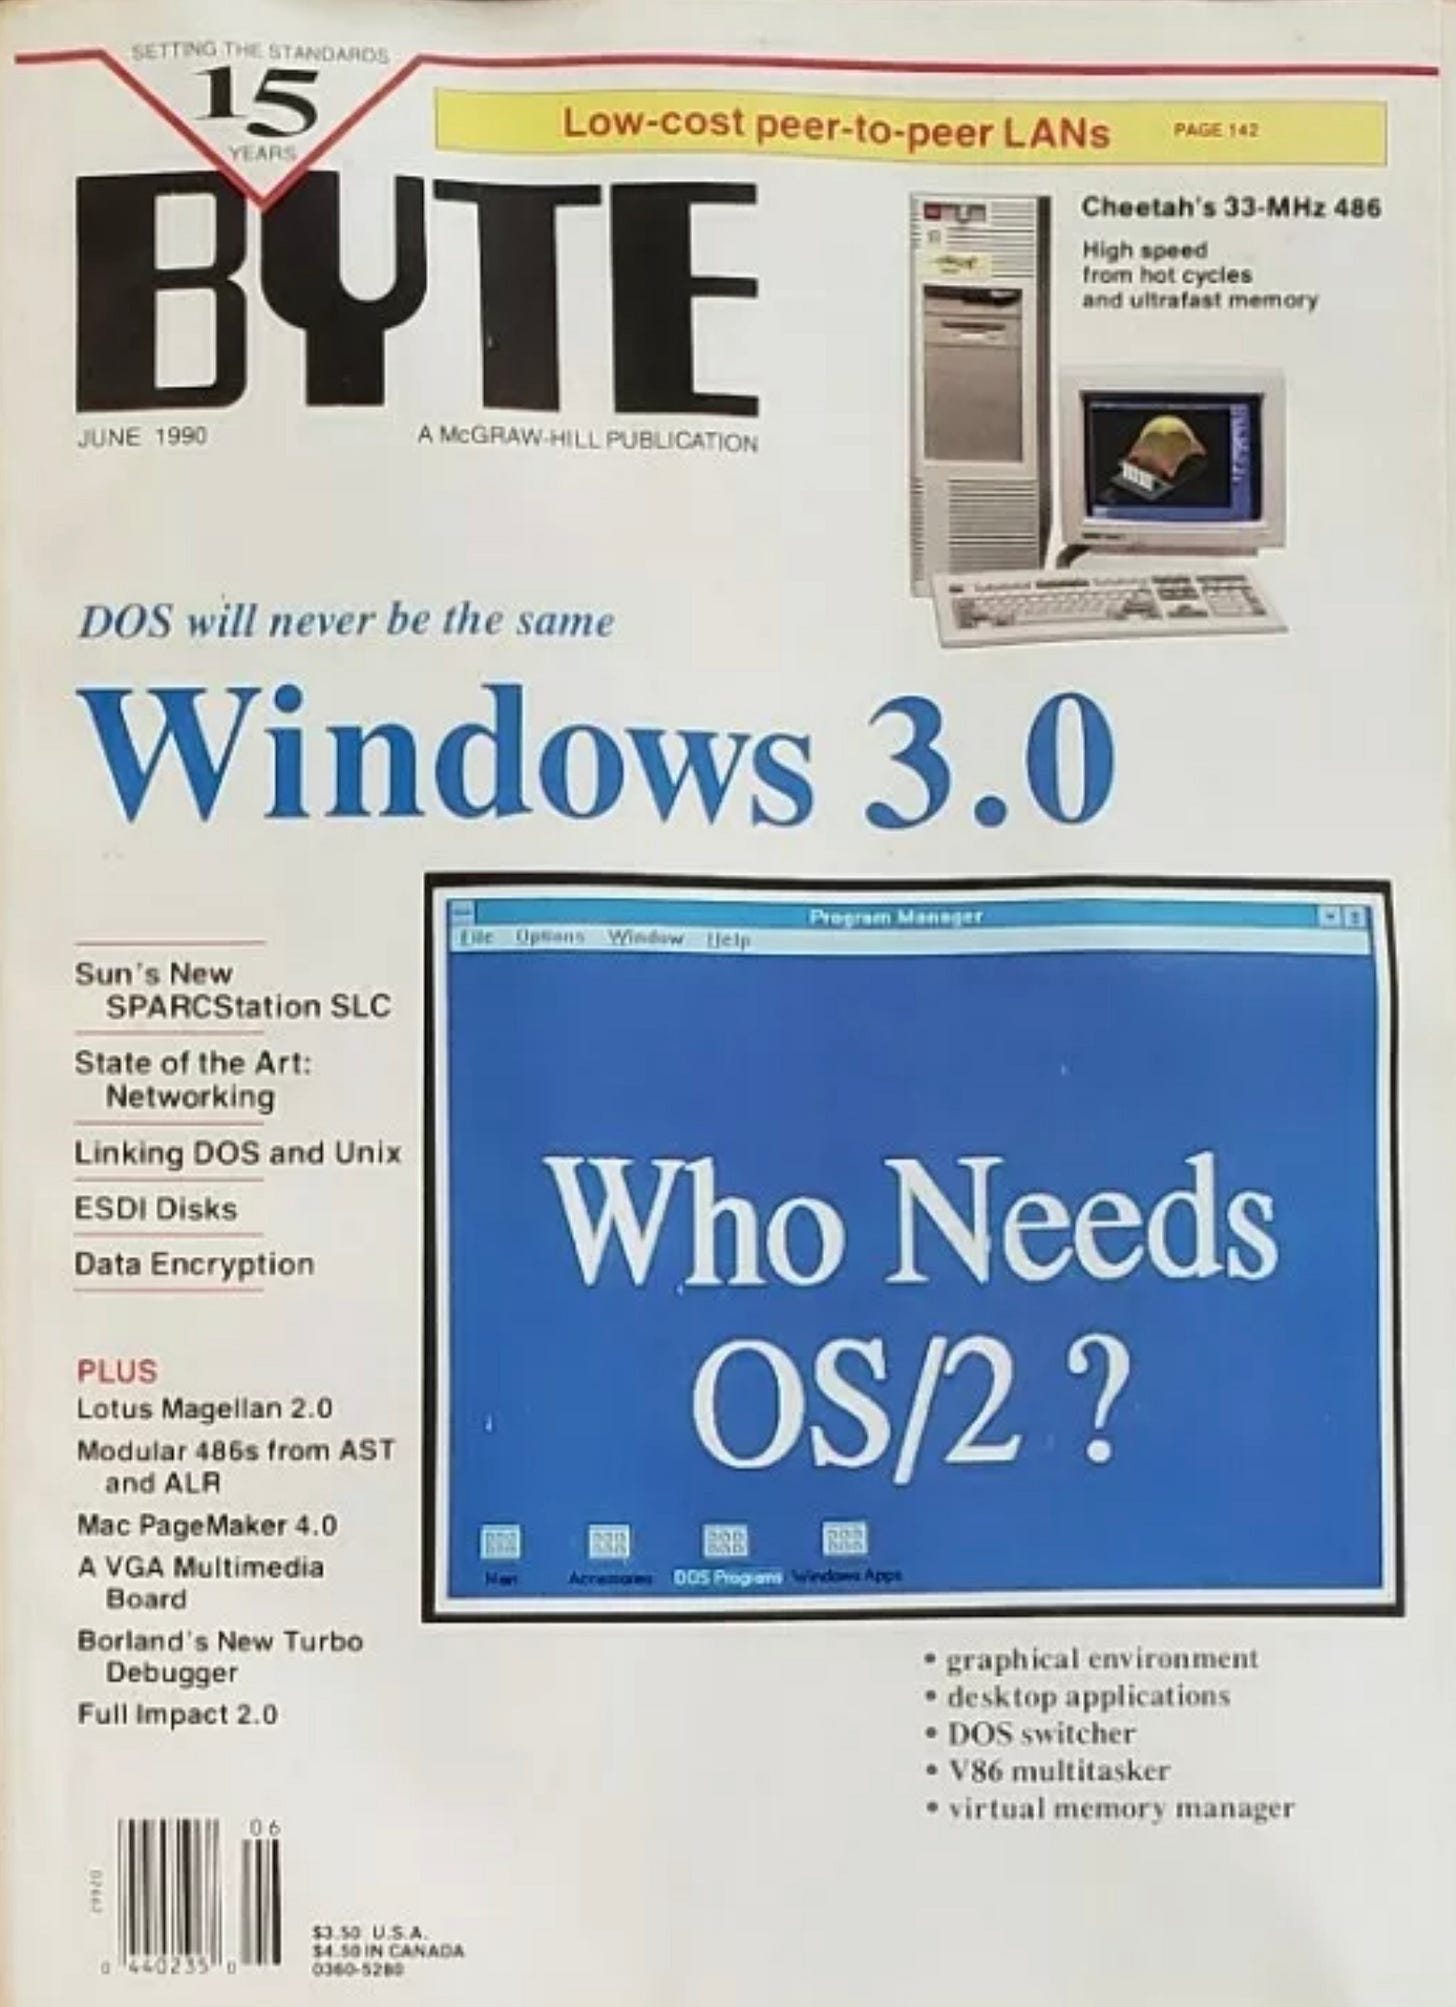 """BYTE Magazine cover from June 1990 """"DOS will never be the same: Windows 3.0"""" with a screen saying """"Who needs OS/2?"""""""